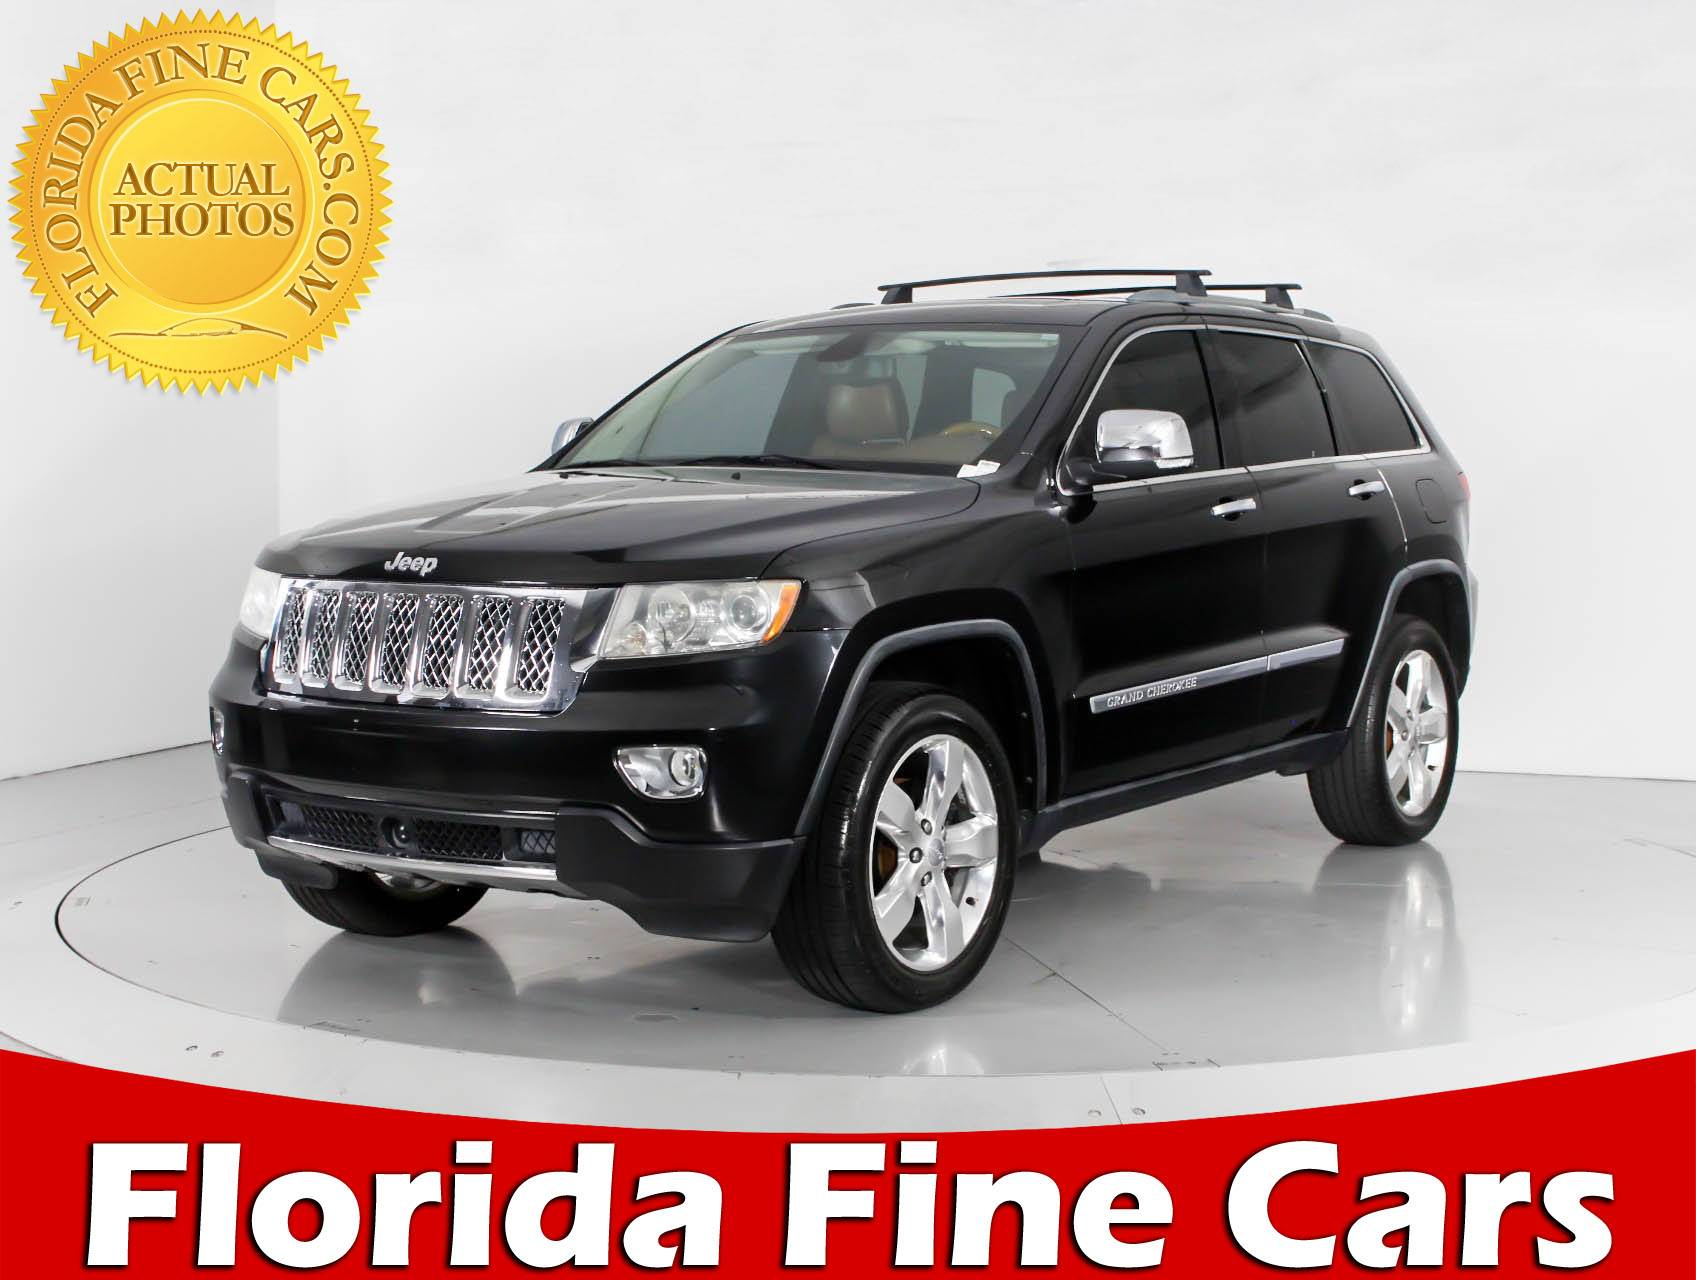 cherokee pre utility inventory overland jeep in grand sport drive four wheel used owned